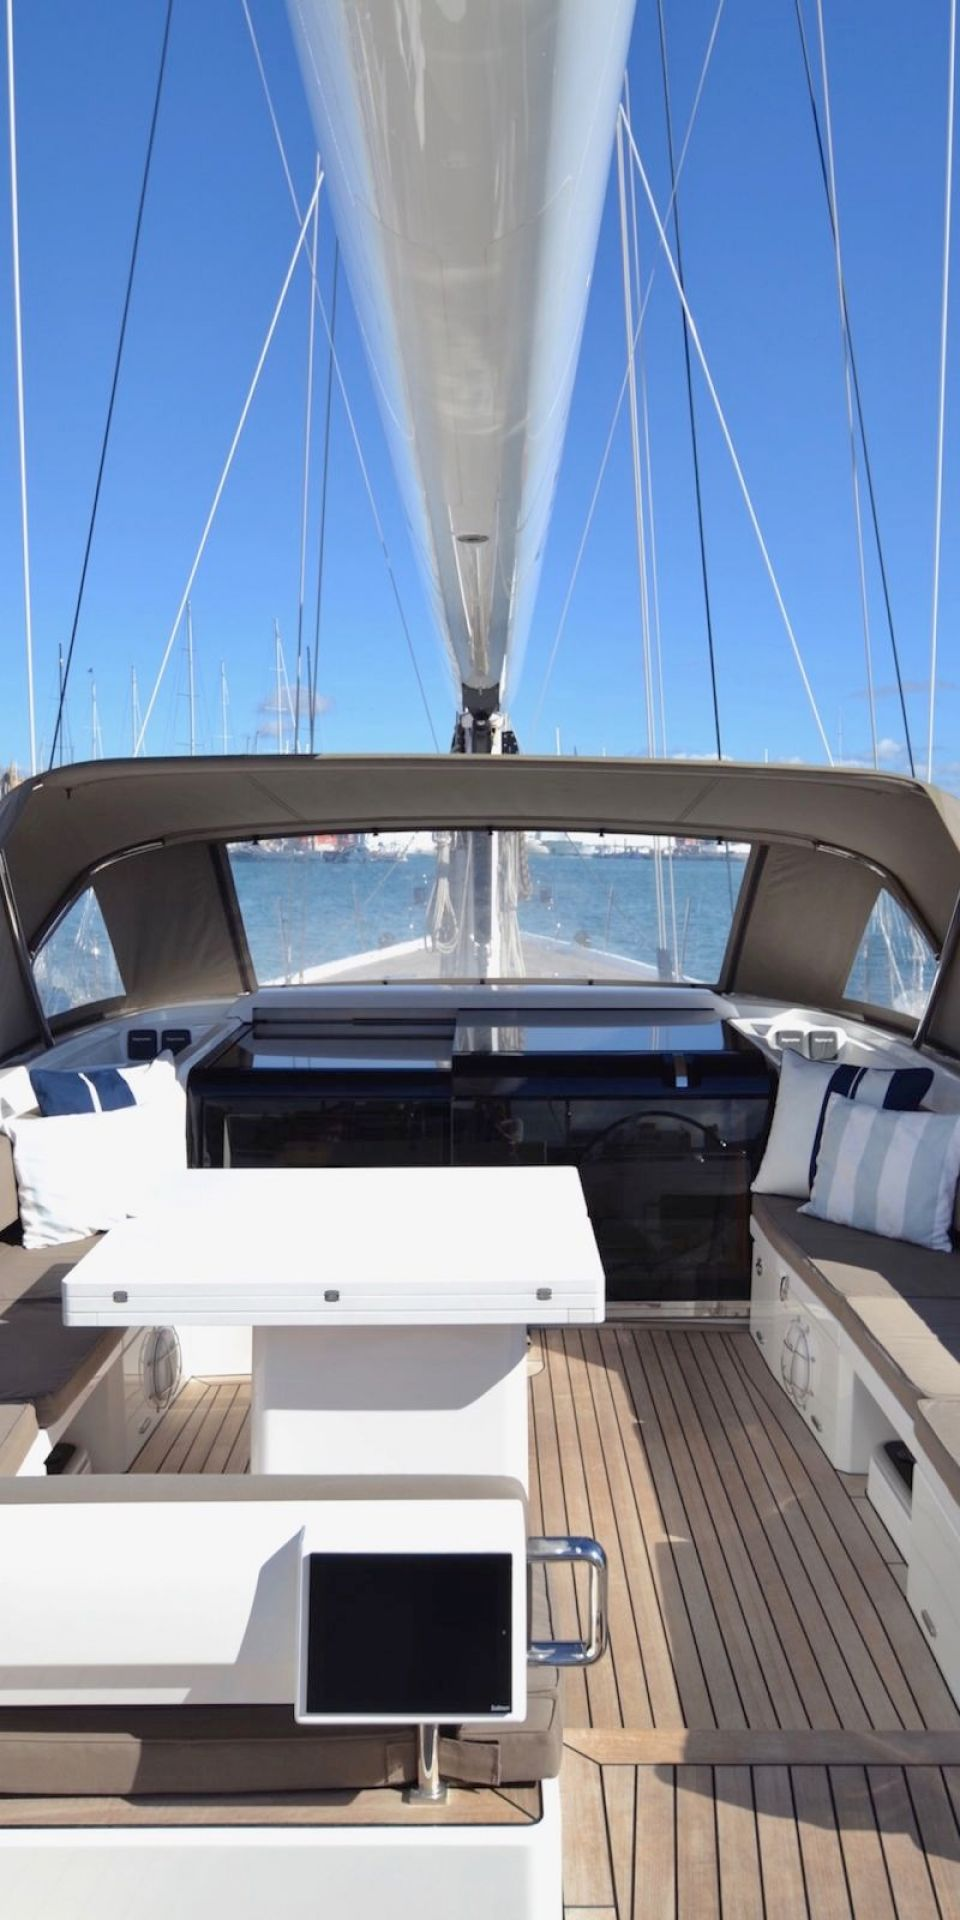 MAEGAN YACHT FOR SALE (25.15M)